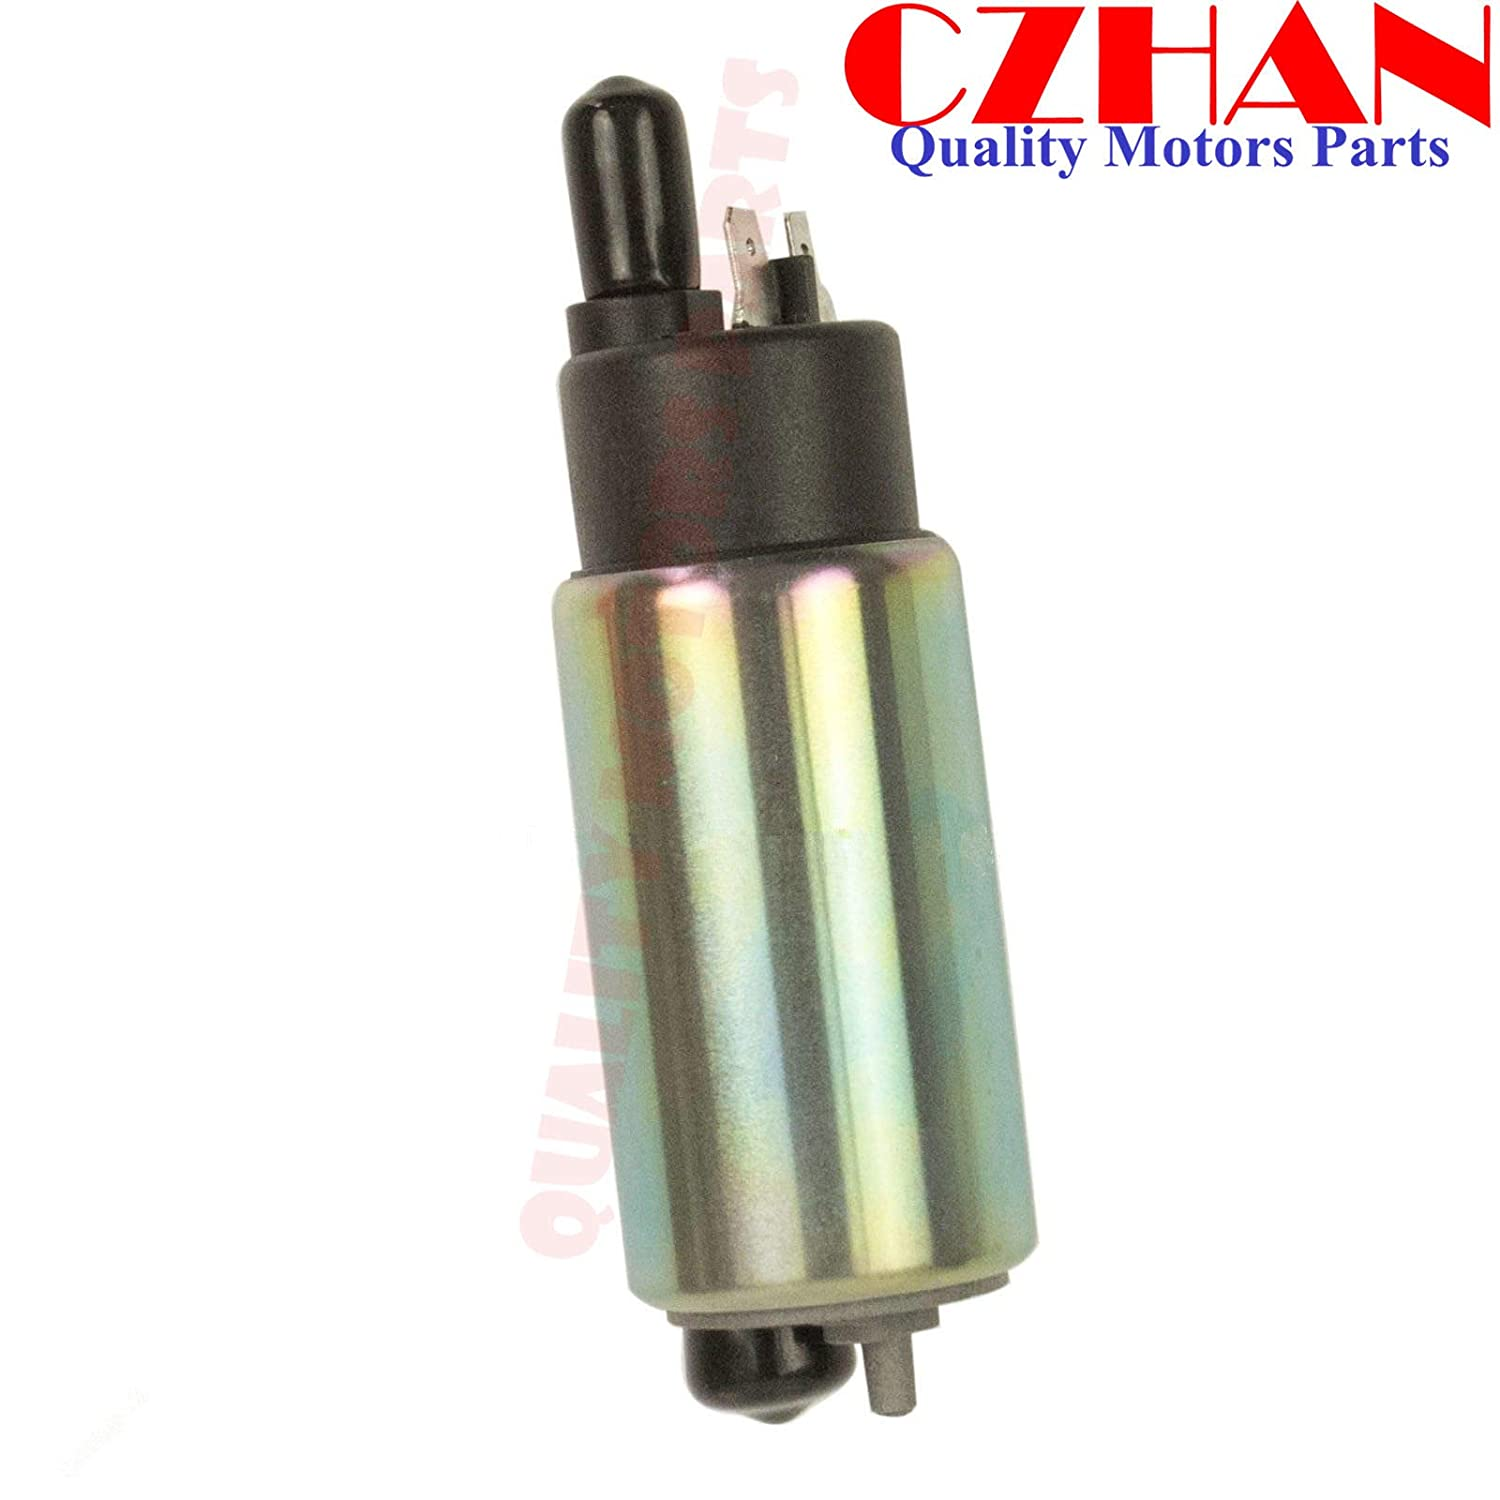 18P-13907-10-00 18P-13907-00-00, CZHAN Fuel Pump with Strainer filter with install kit for Yamaha YFZ450 YFZ450R YZF 450R Yfz450x 450x 2009-2018,18P139071000,18P139070000